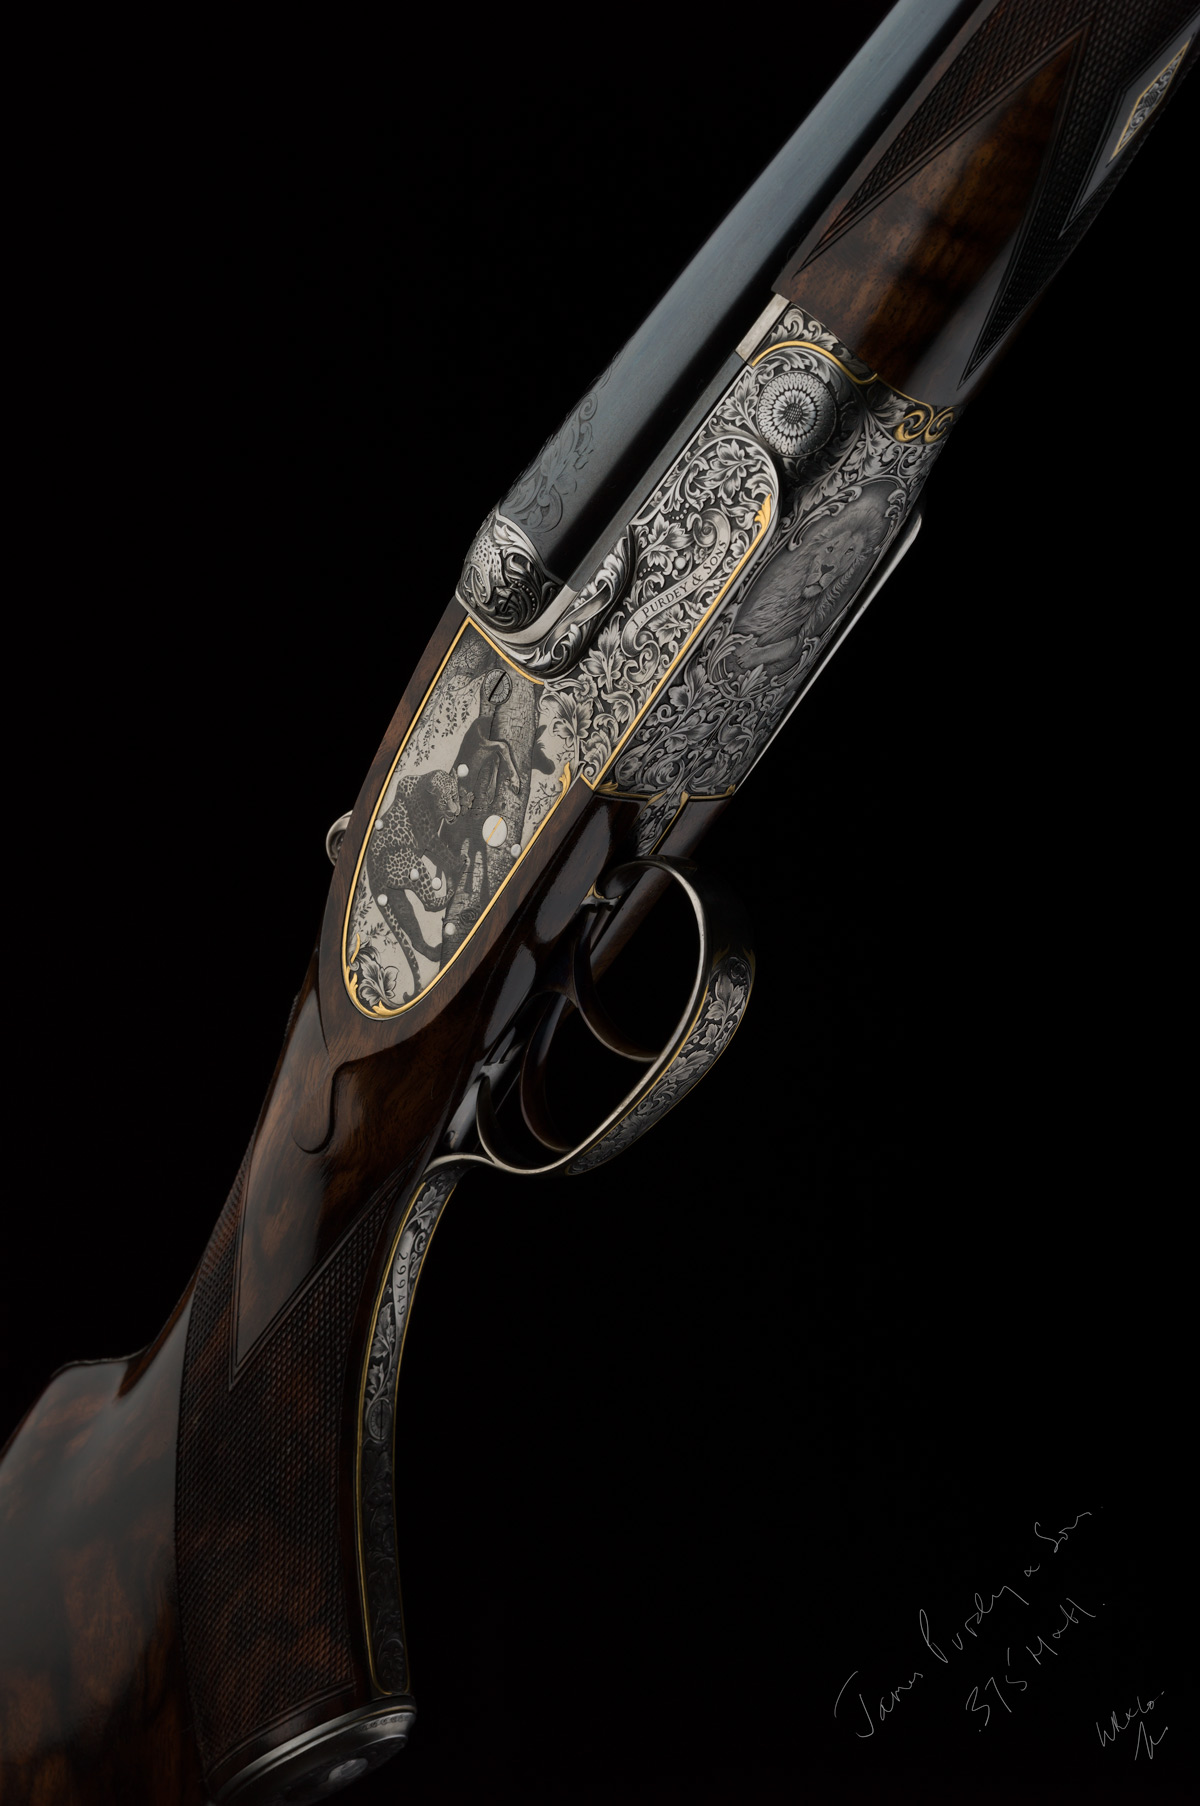 A Purdey self-opening double rifle in 375 Holland & Holland Magnum. The British gunmaker's art exemplified. (Picture courtesy of theexplora.com).